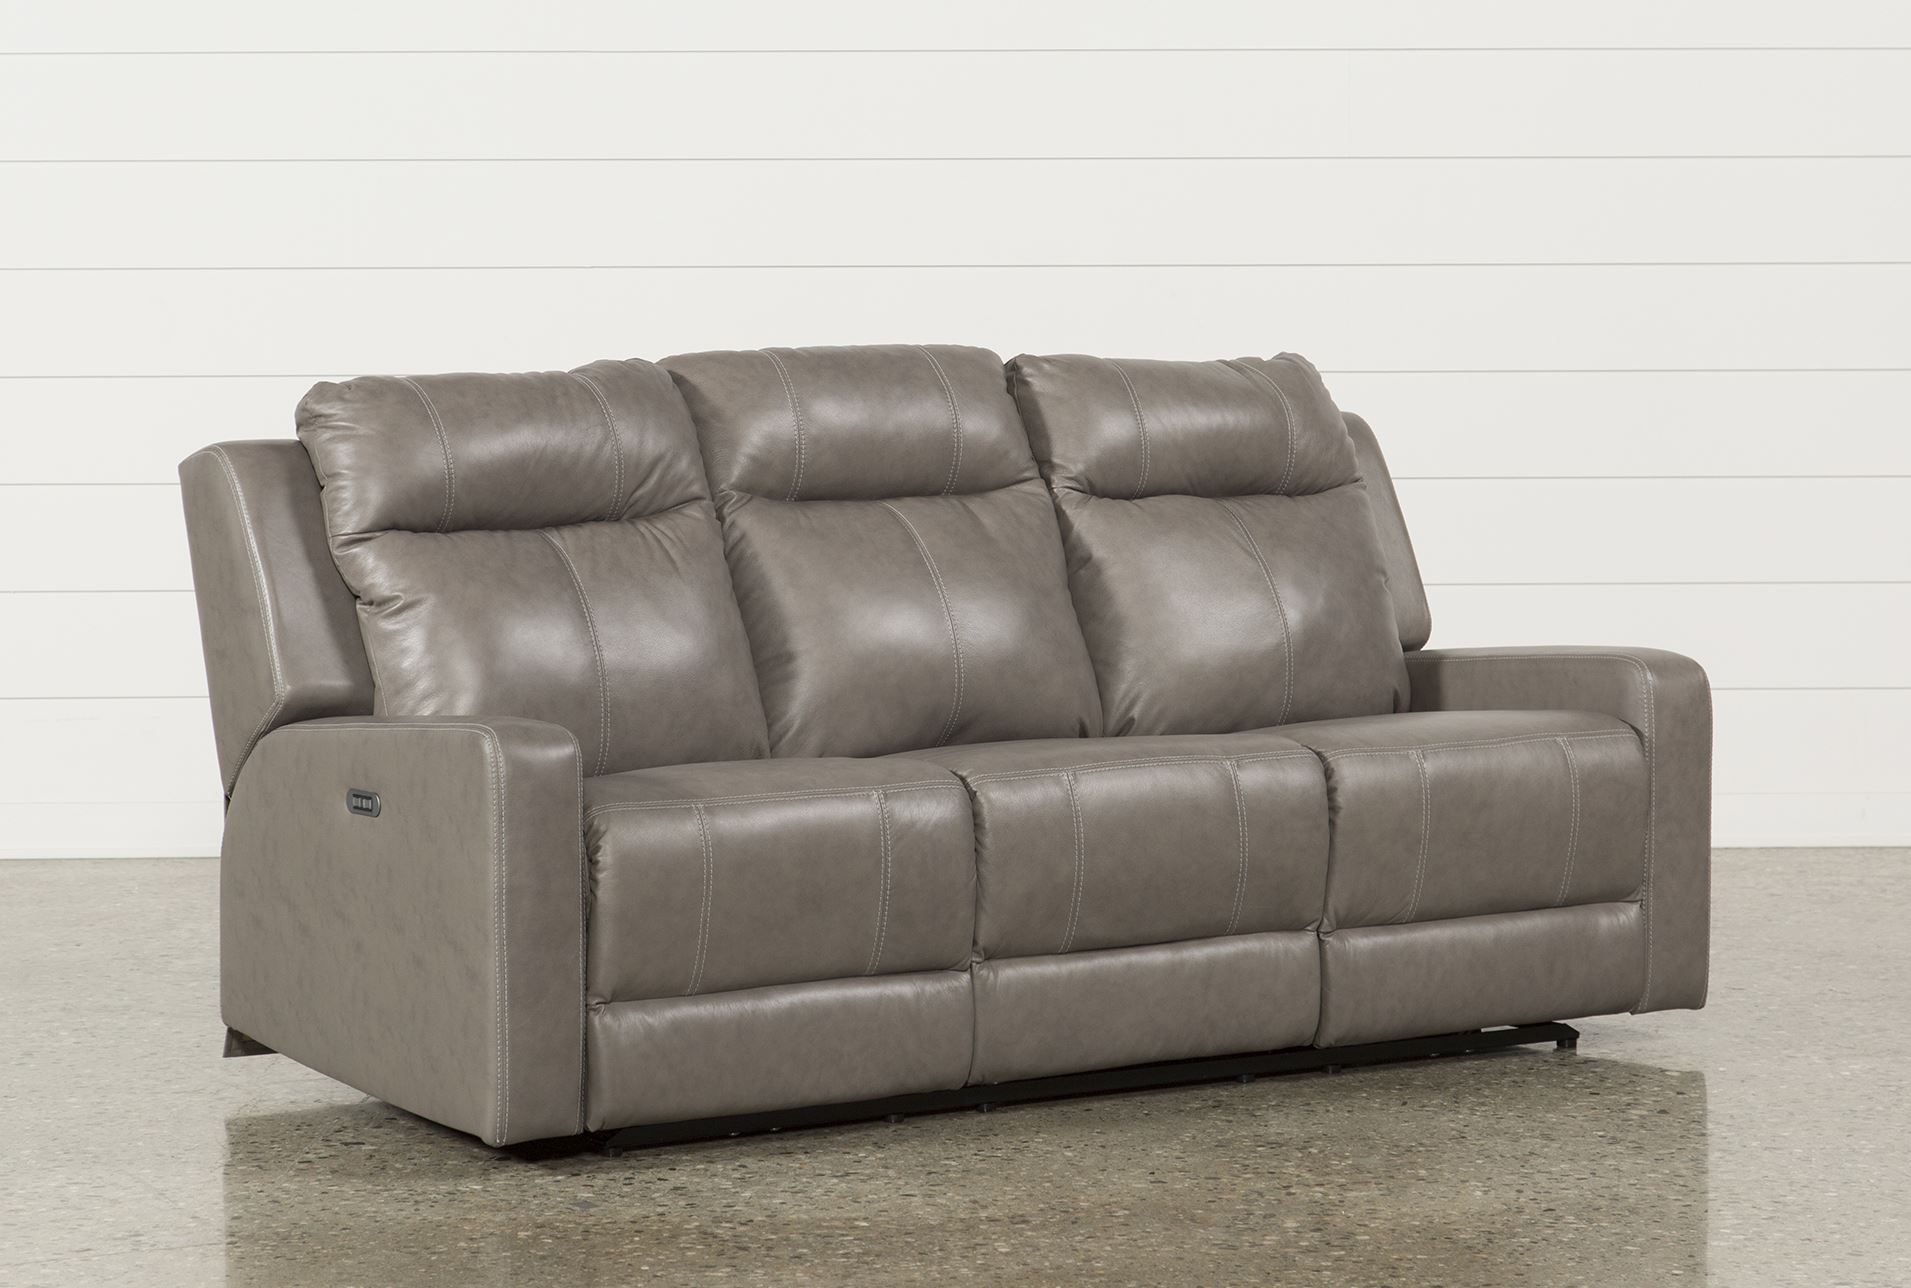 Sequoia Sable Dual Power Reclining Sofa W/Adjustable Headrest